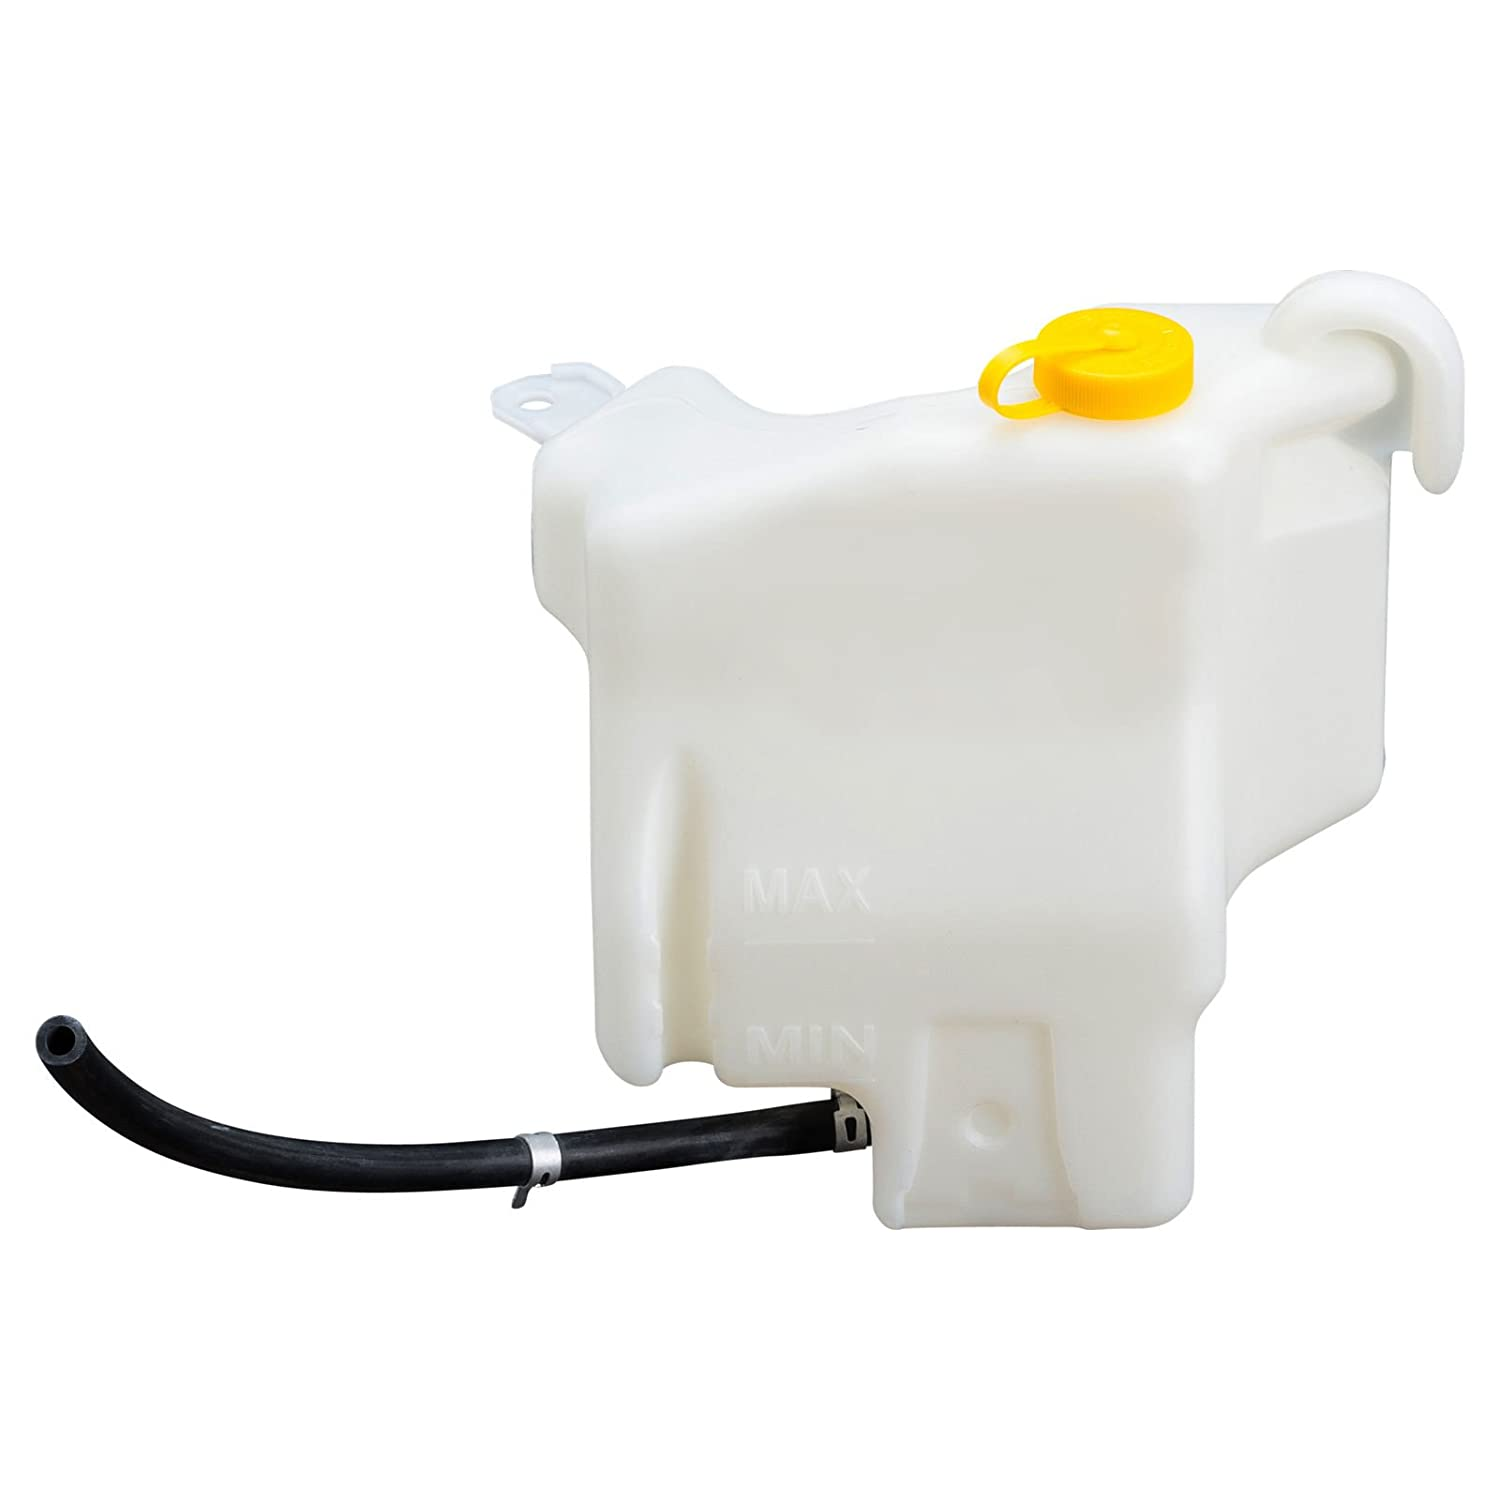 Coolant Tank Reservoir Recovery Bottle for Altima Maxima fits NI3014106 Parts Galaxy